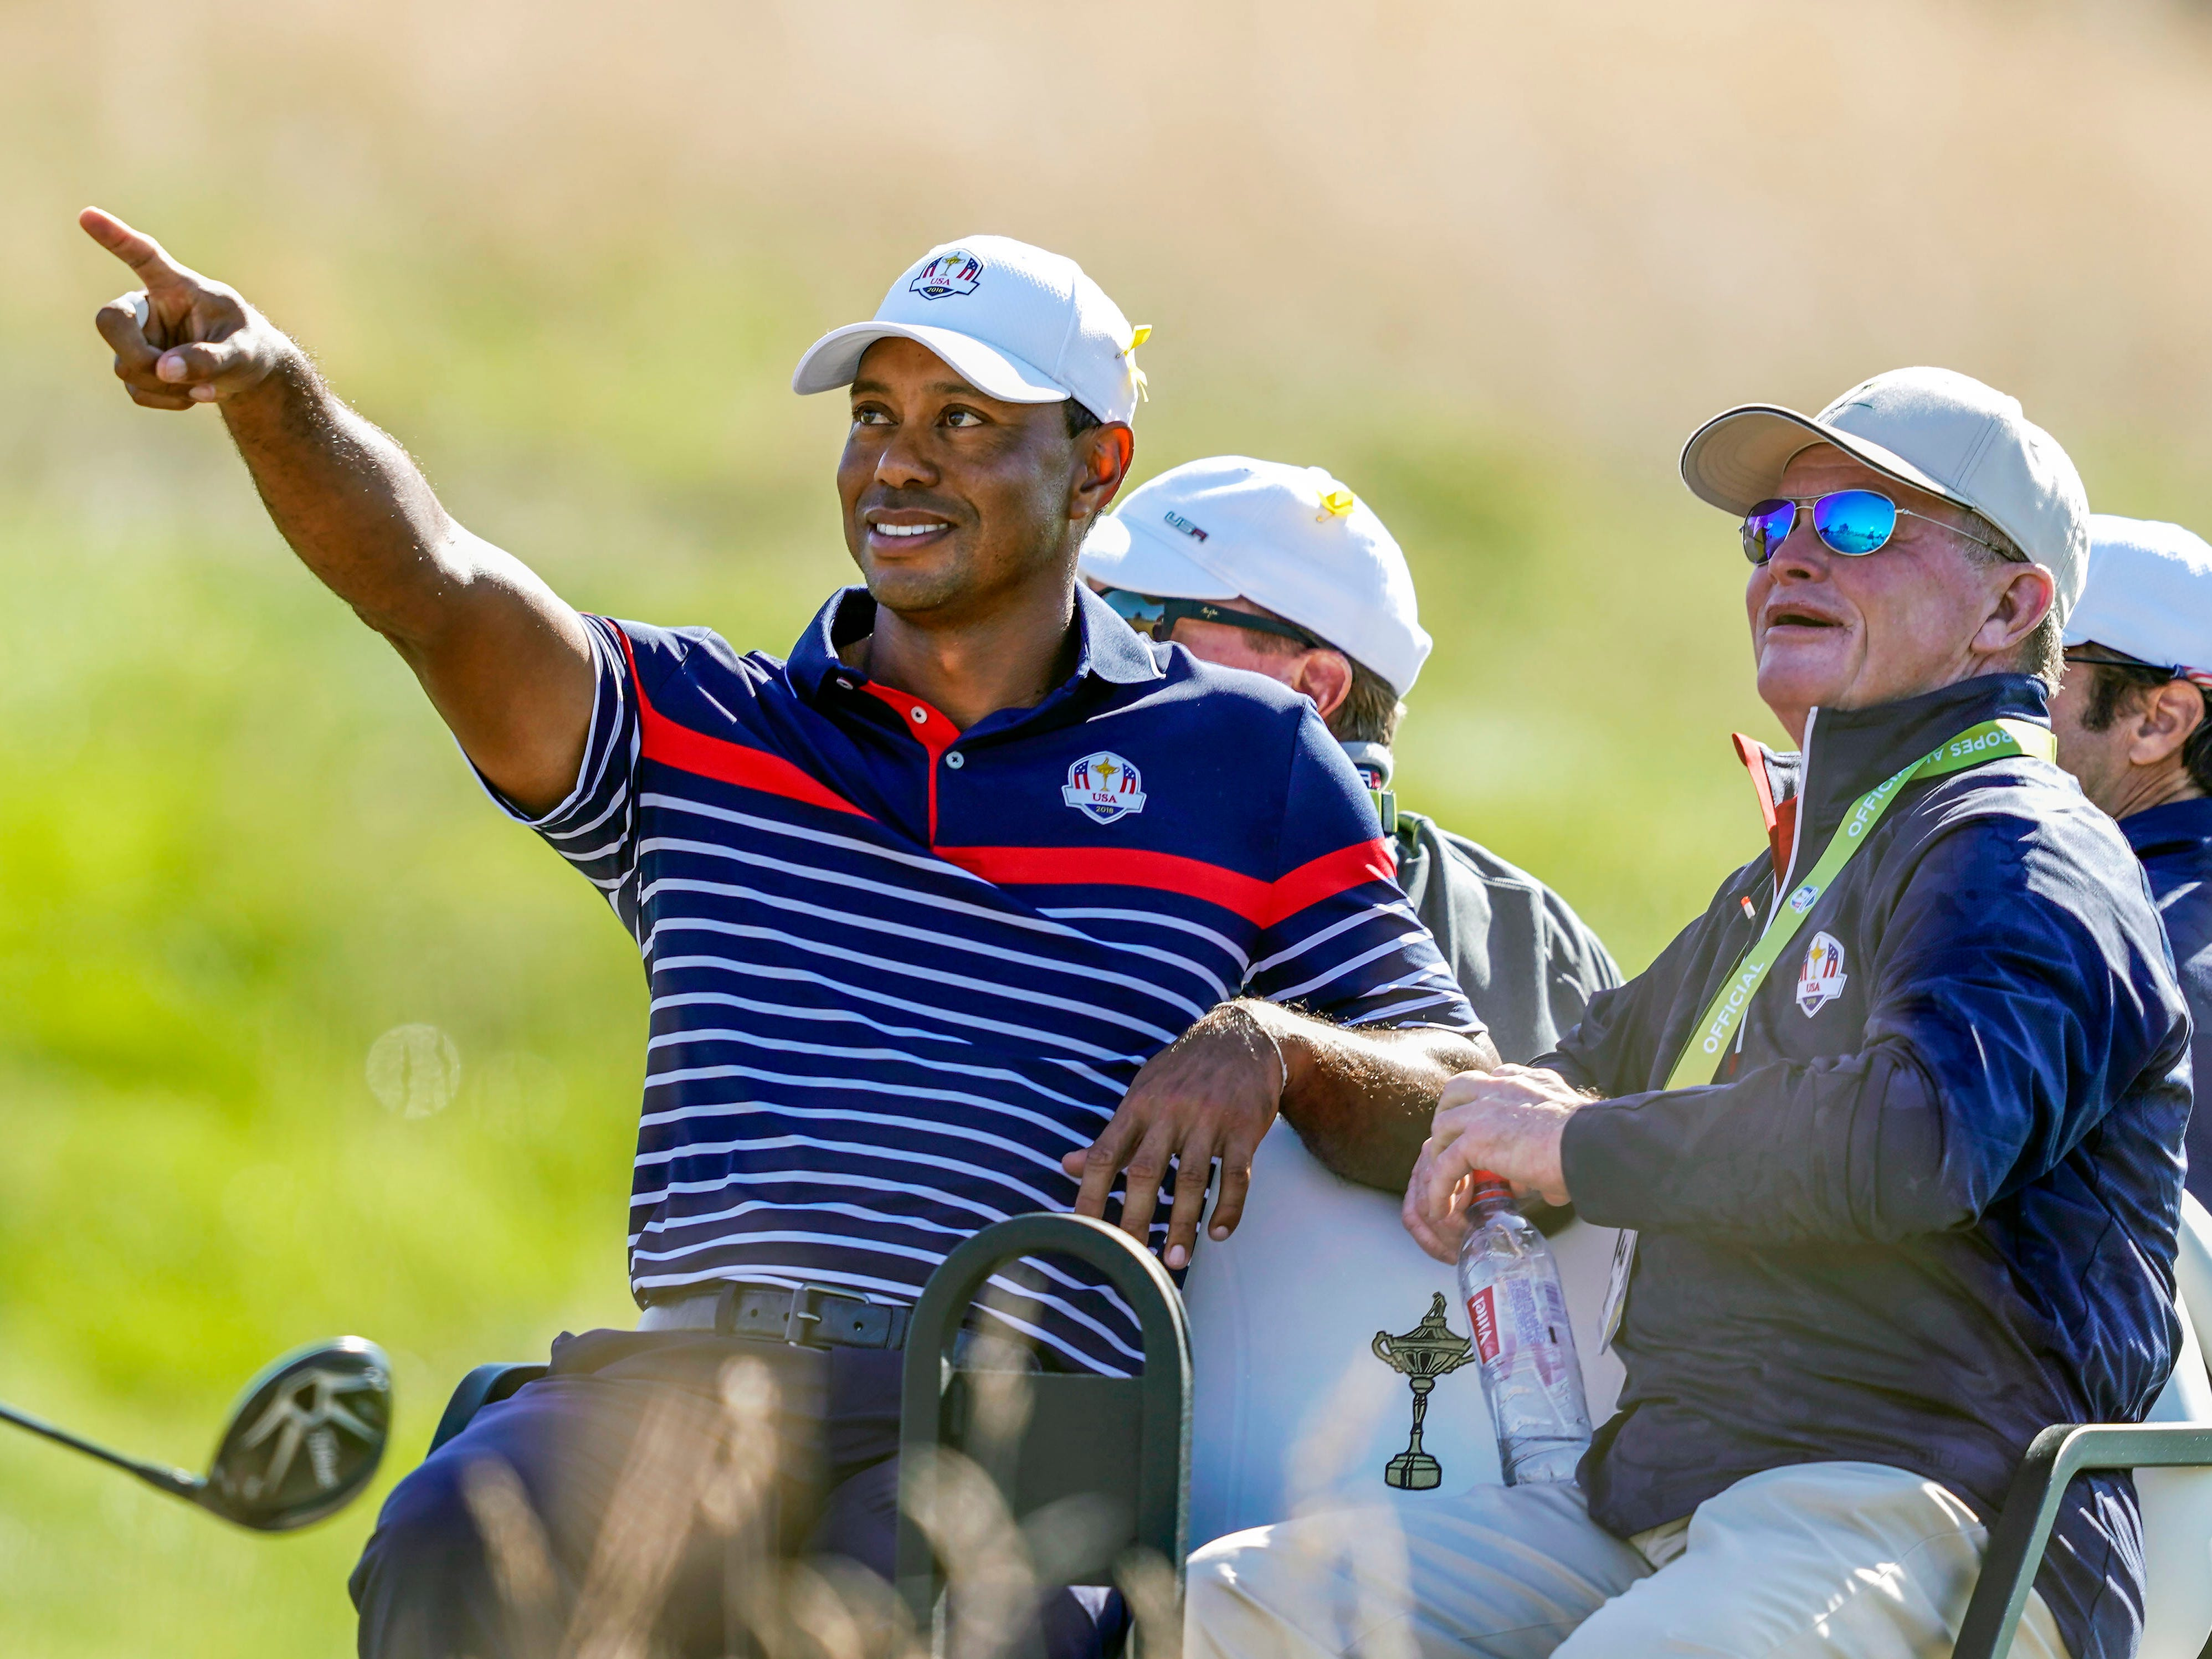 Tiger Woods points out aircraft flying overhead to Tom Kite during a Ryder Cup practice round.